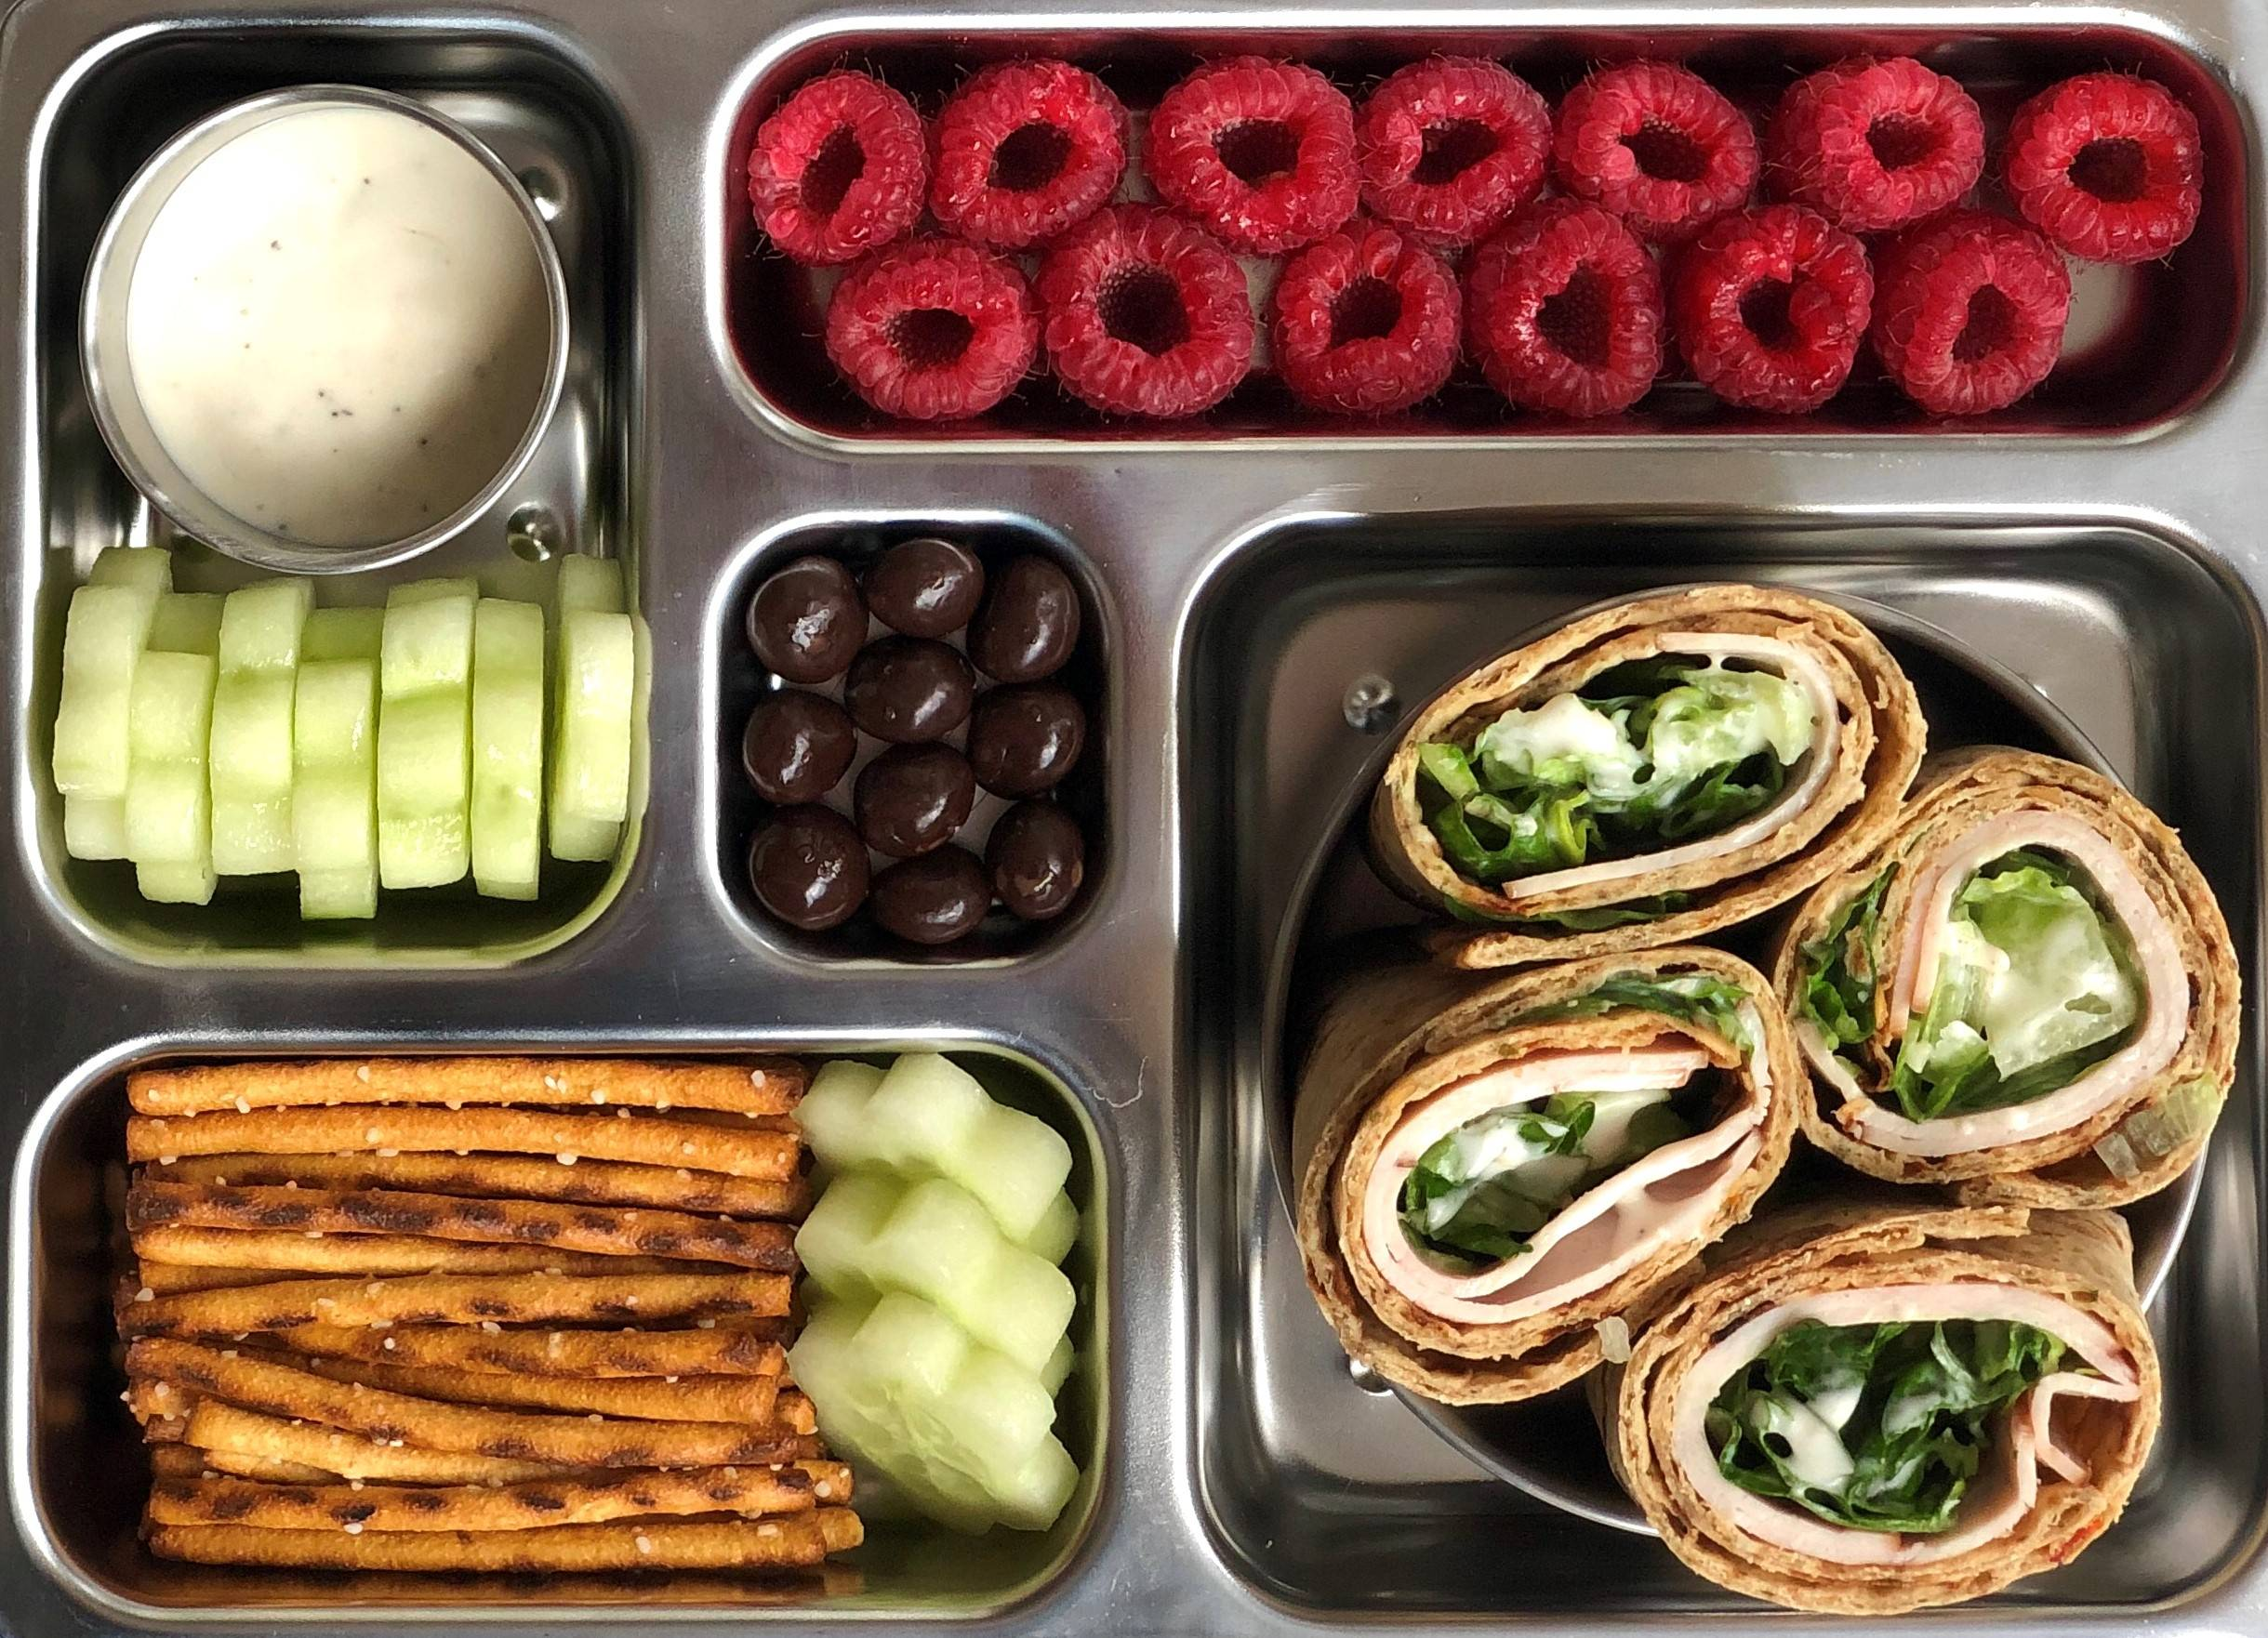 Sneak peek of a kid's quick and healthy school lunch containing Turkey Caesar Lavash Rollup, pretzel sticks, cucumber cutouts with dip, raspberries, and dark chocolate covered dried fruit.